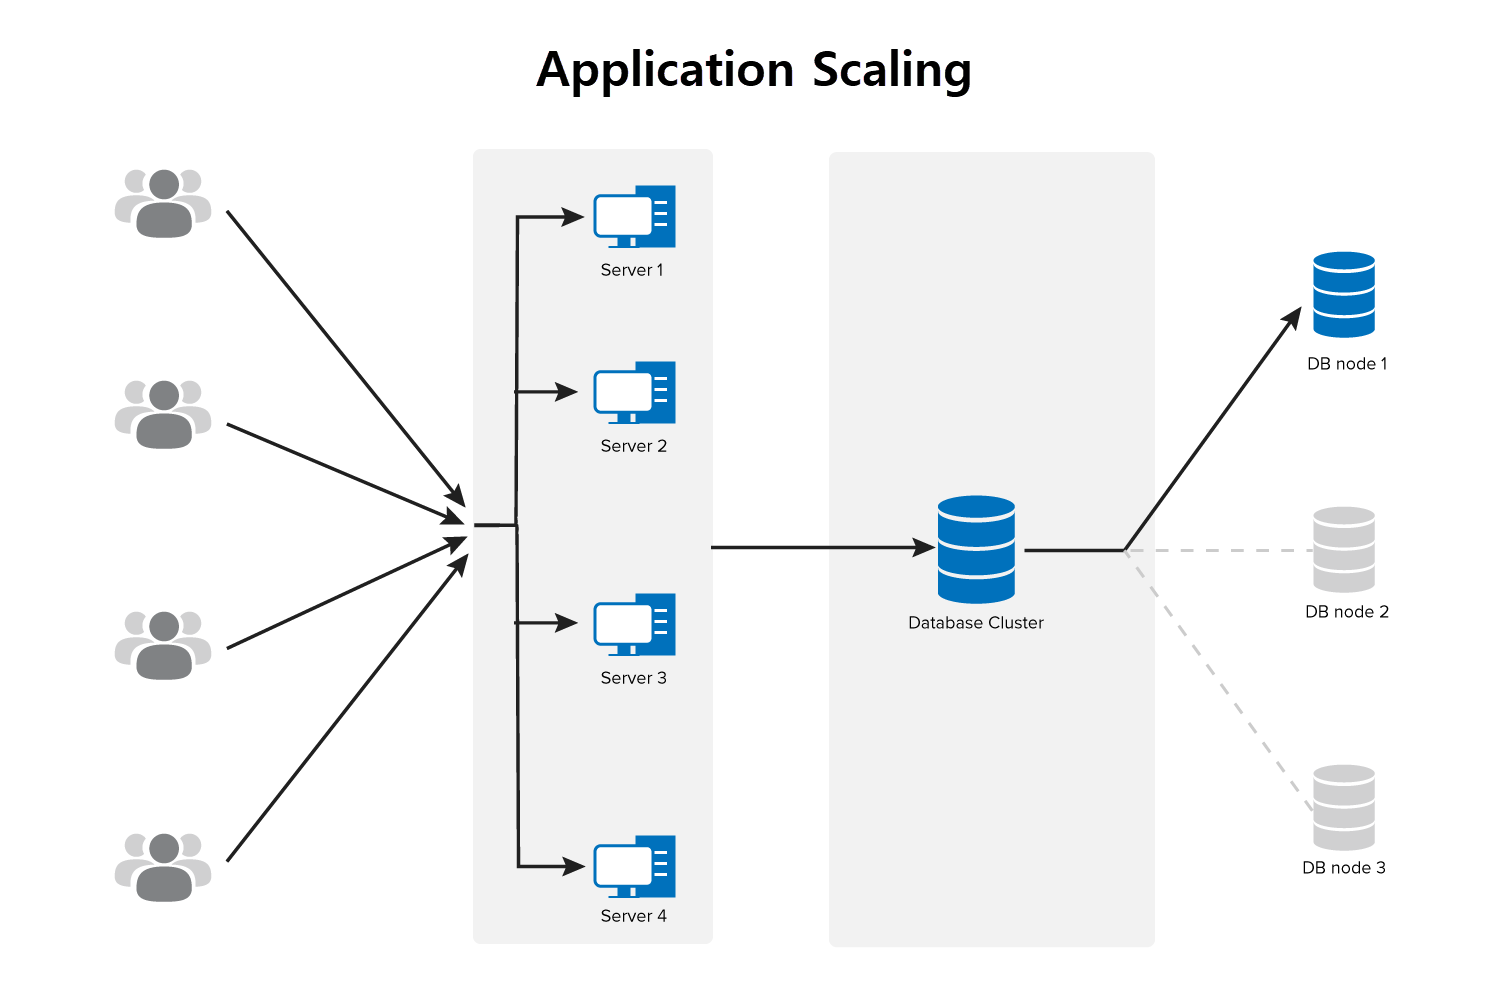 application scaling with MS SQL cluster